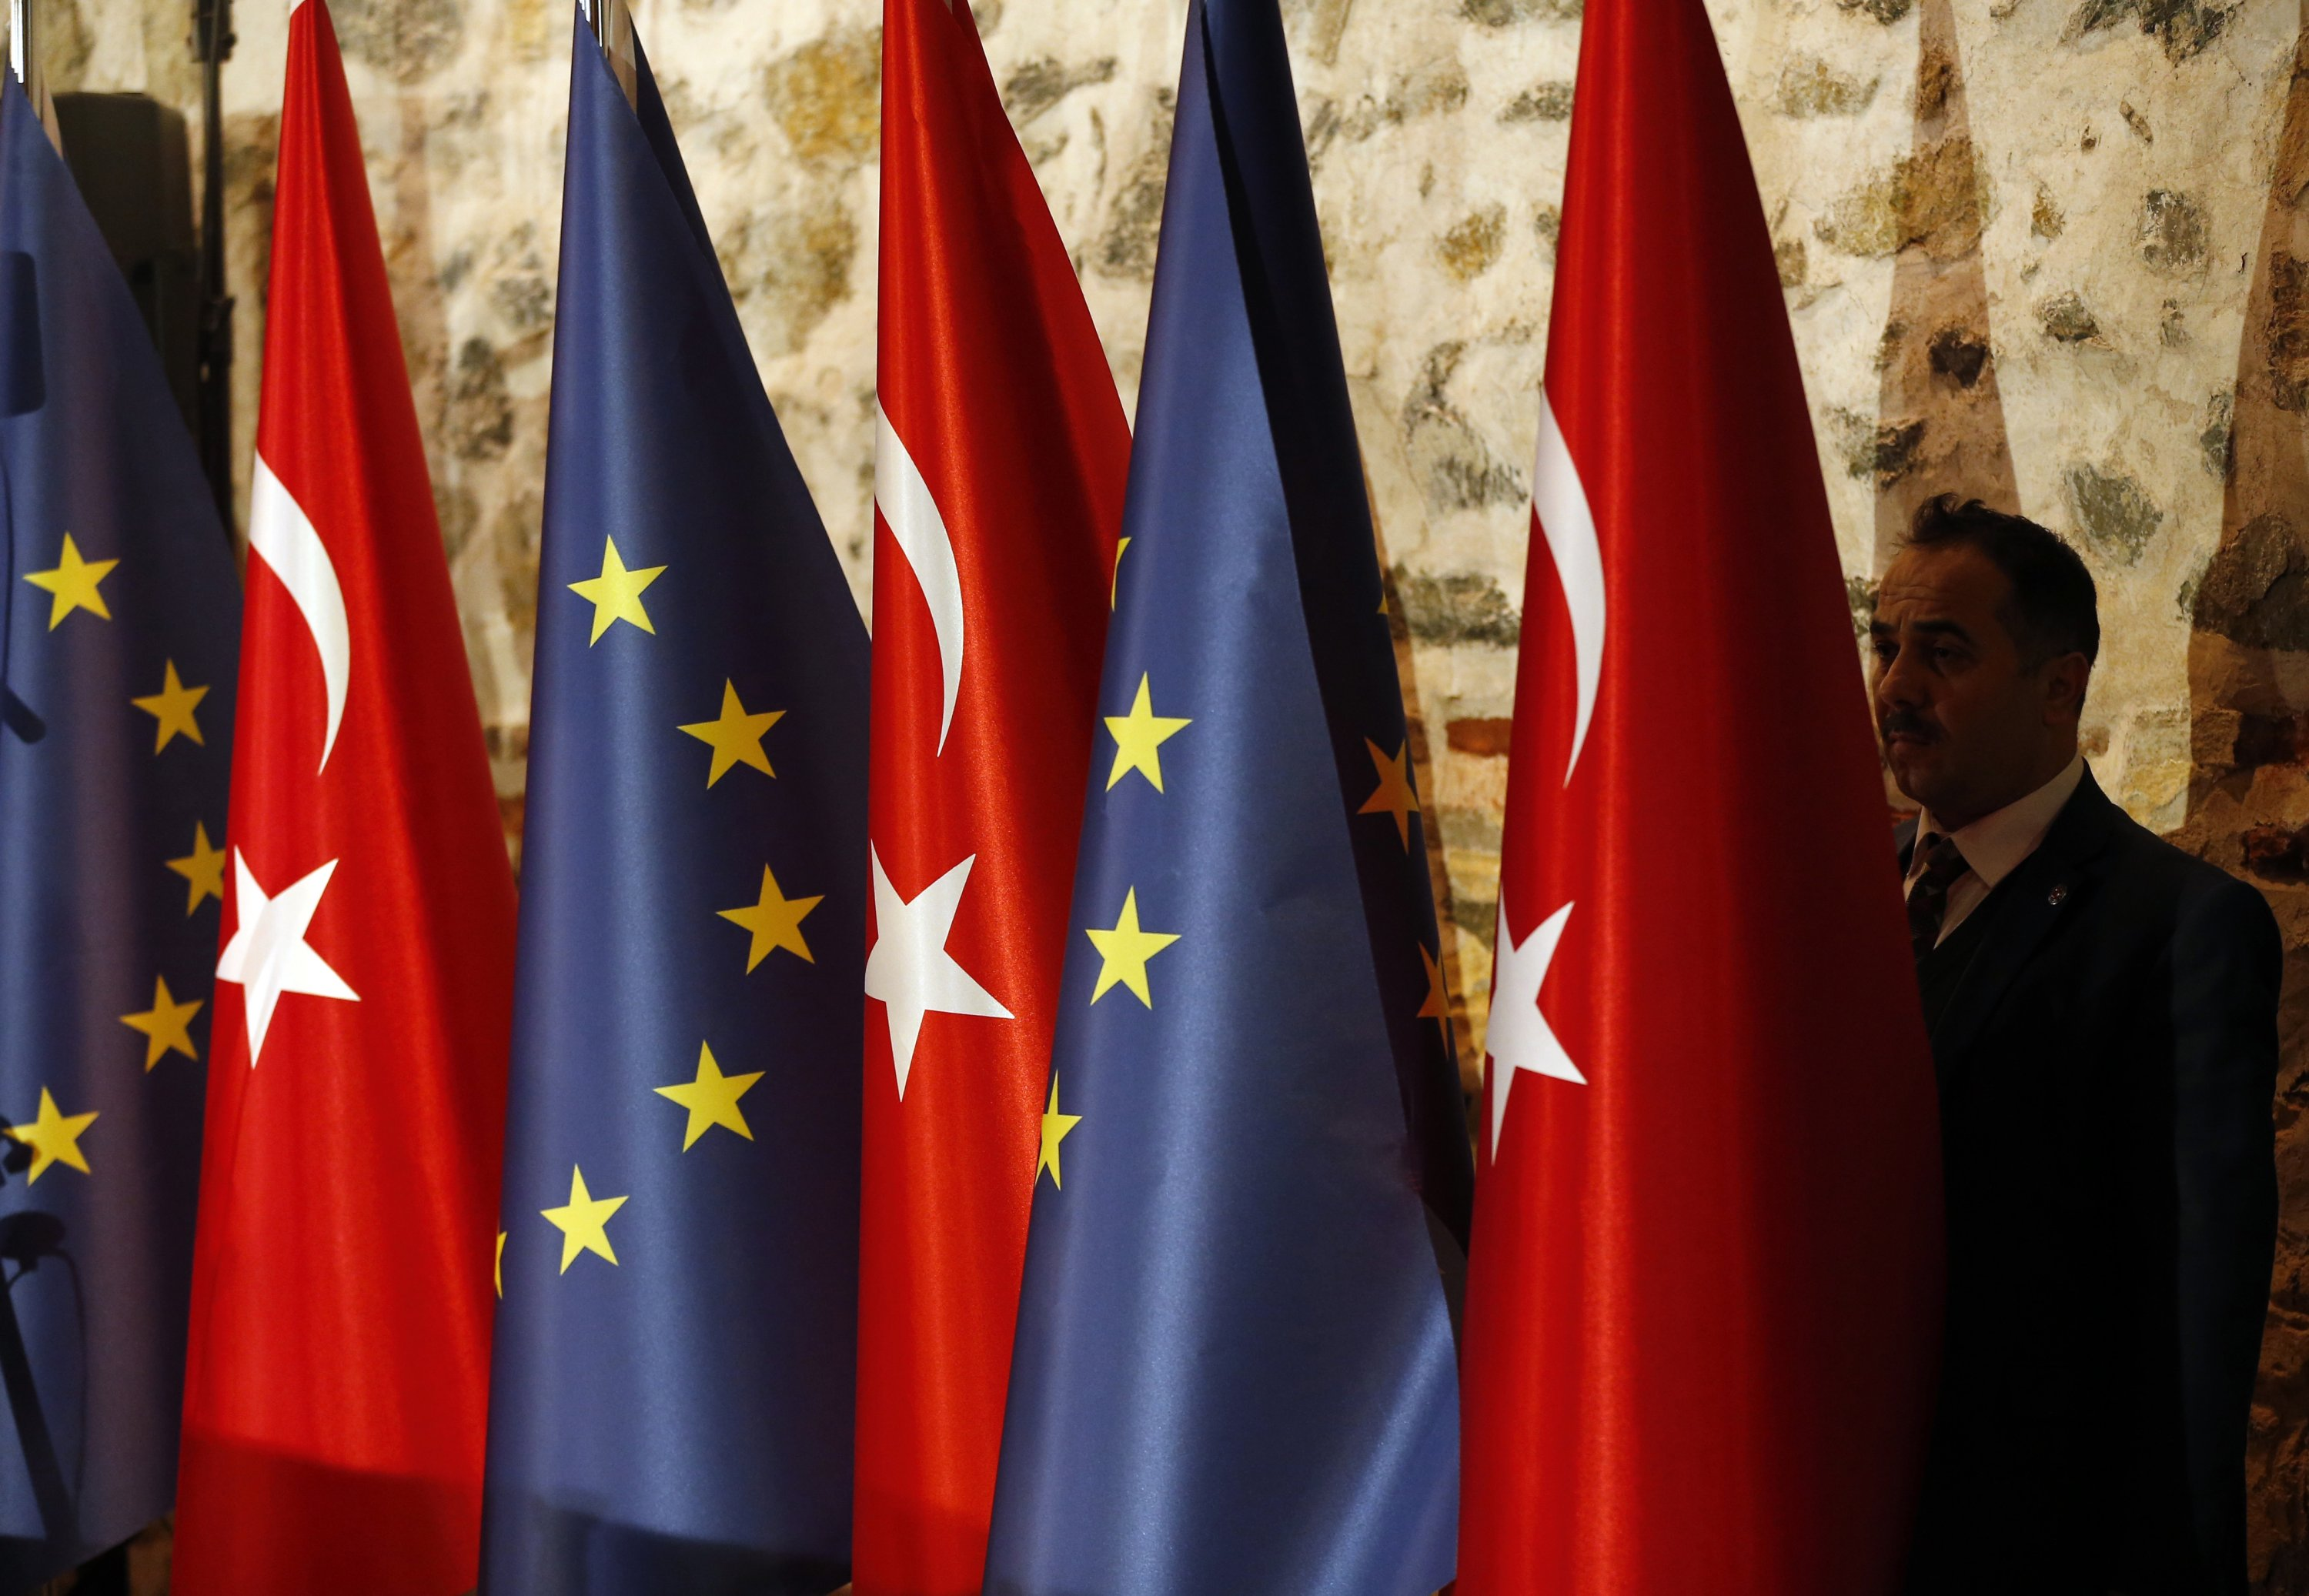 How the EU lost its soft power on Turkey